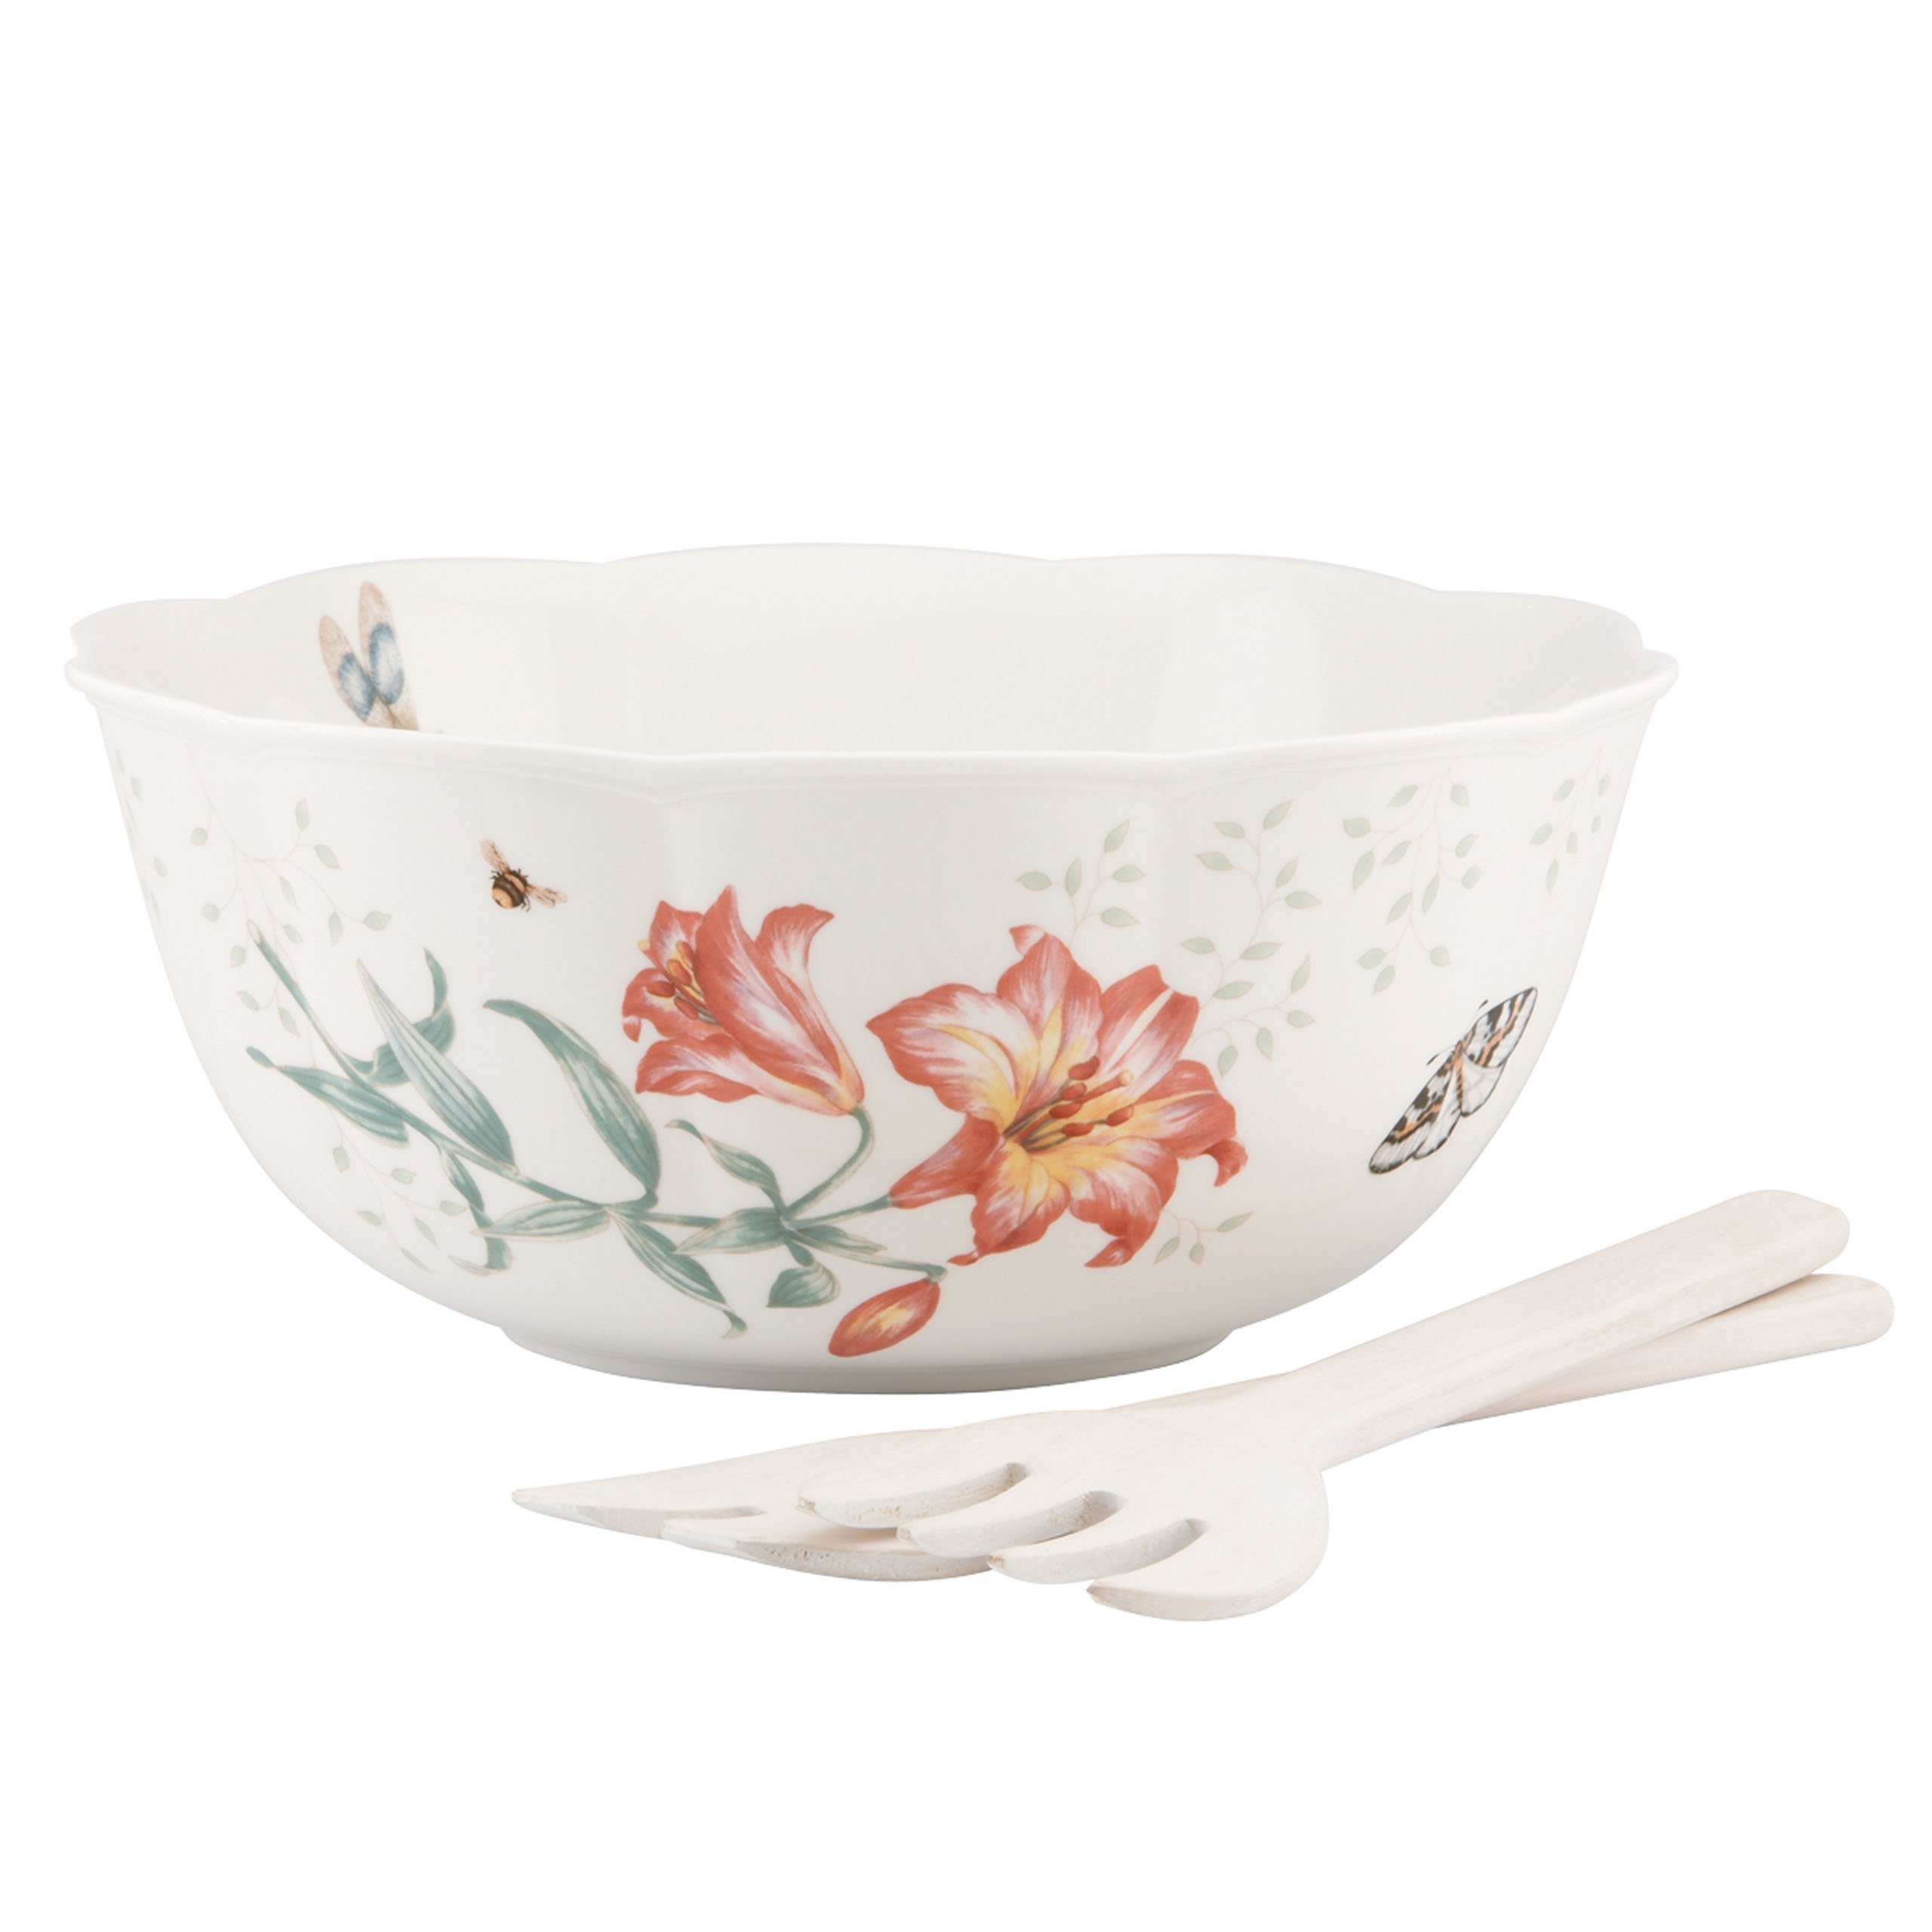 Lenox Butterfly Meadow Salad Bowl with Wood Servers by Lenox